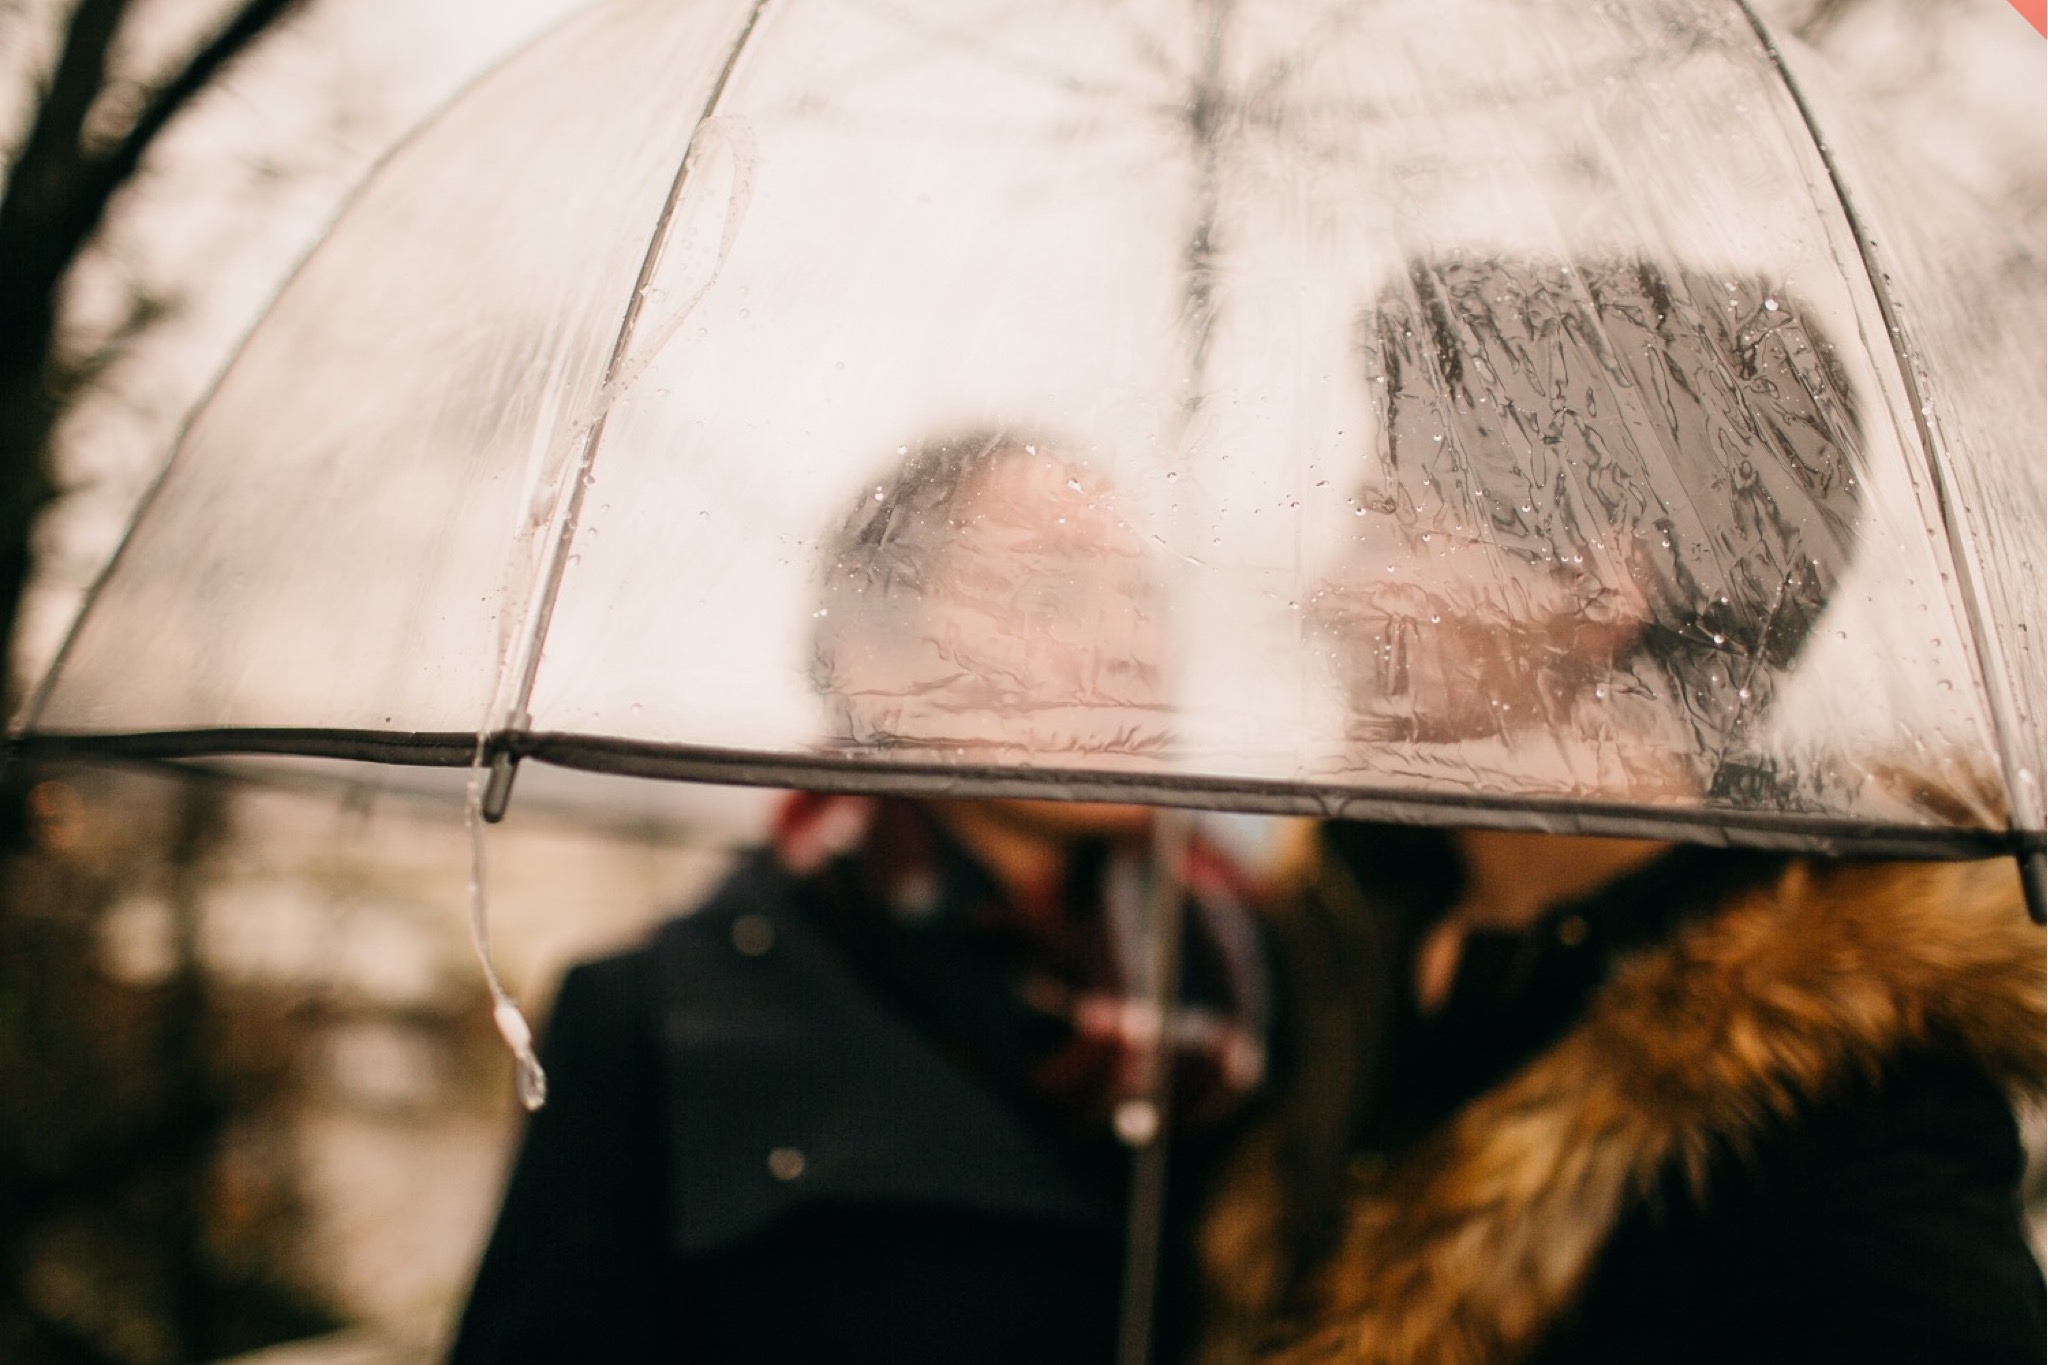 A lesbian couple stand under a transparent umbrella in the rain.